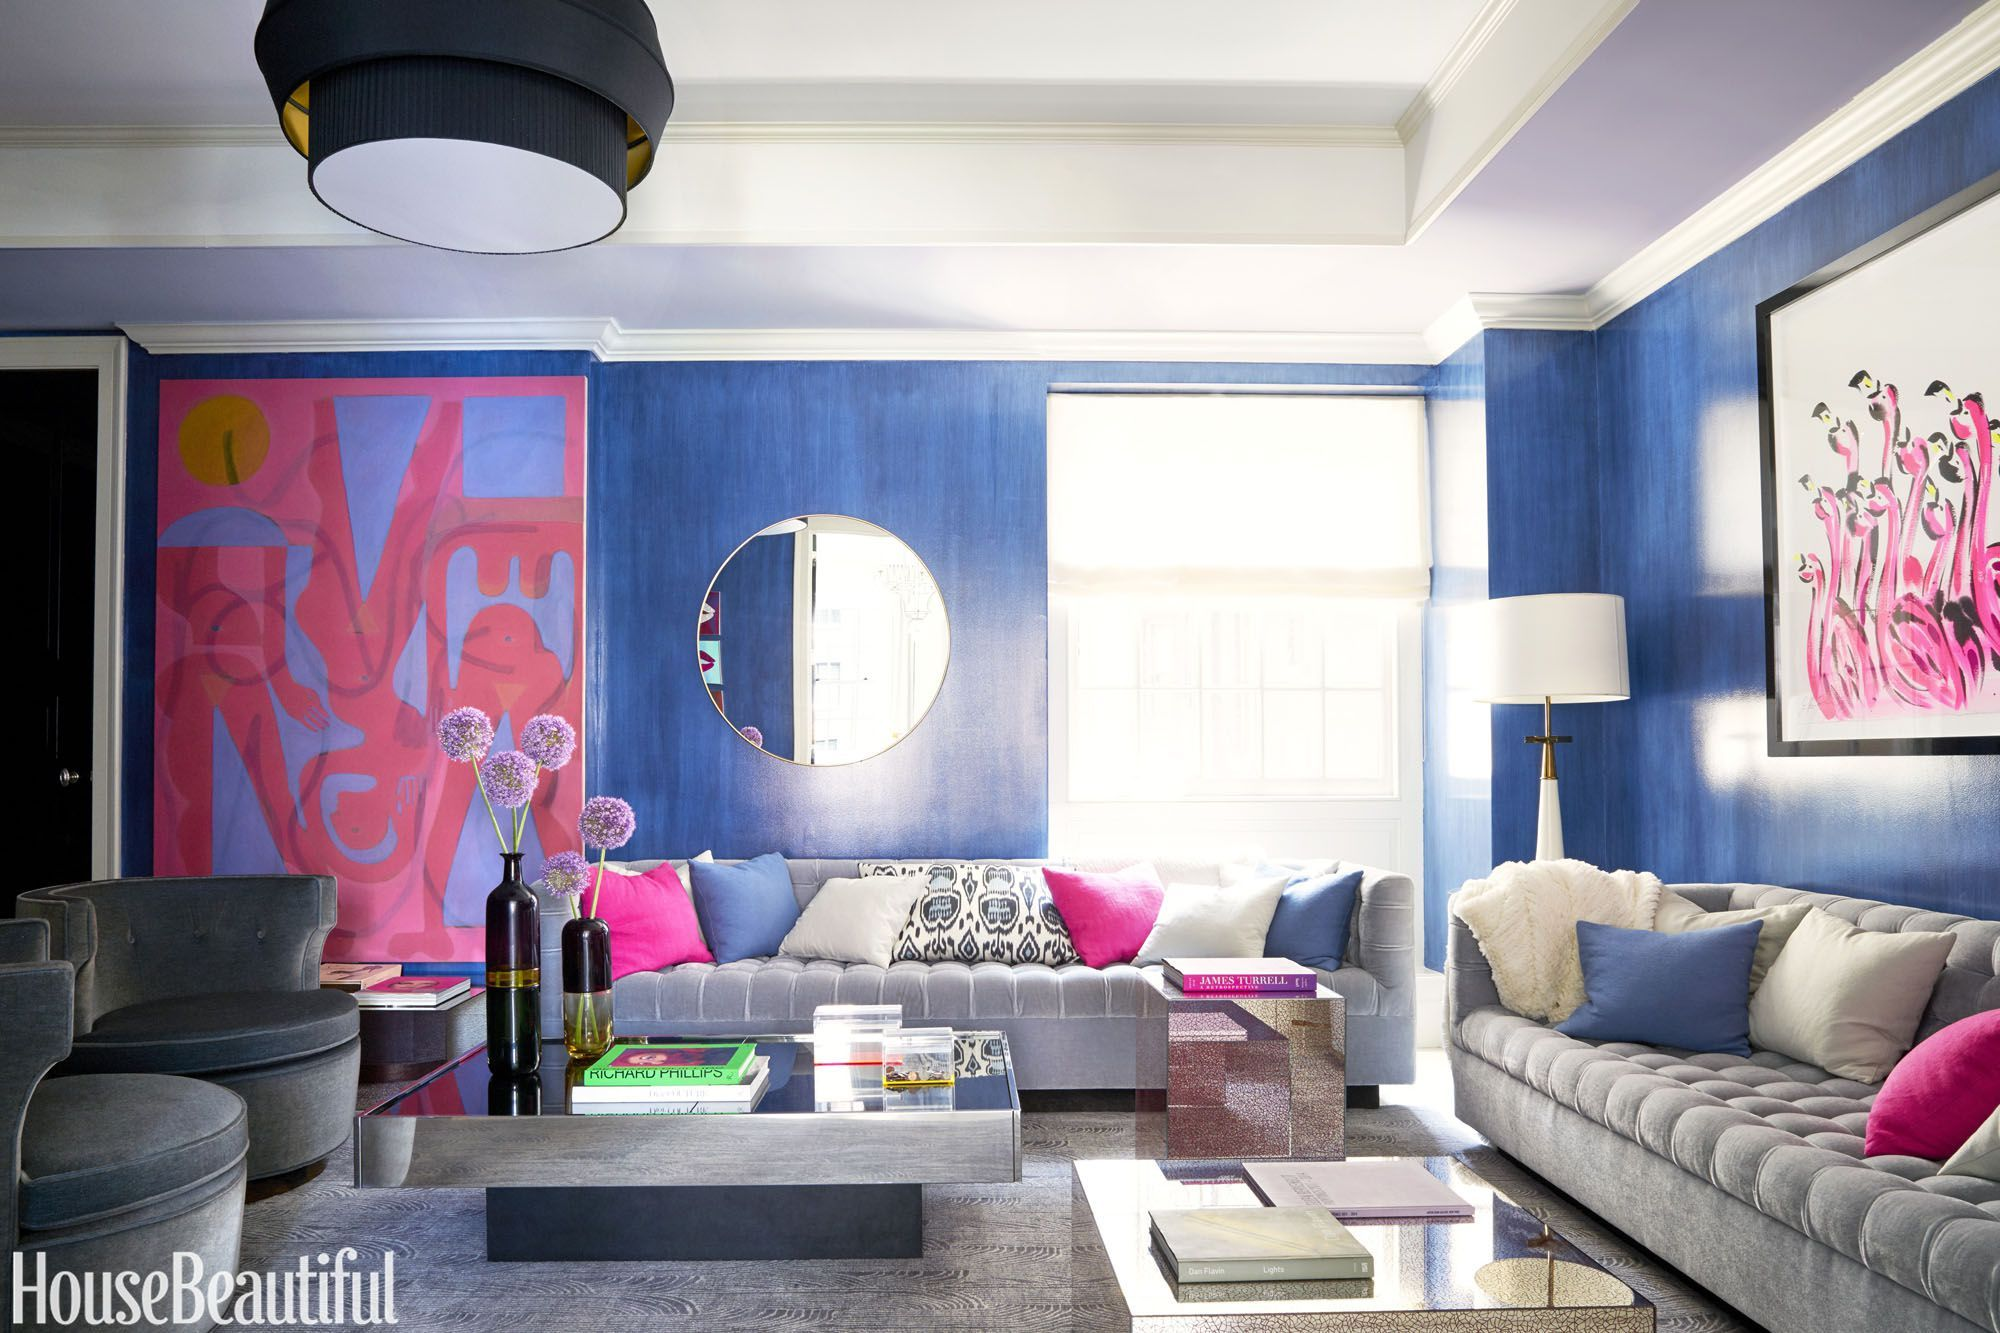 Living room paint color ideas & 25 Best Living Room Color Ideas - Top Paint Colors for Living Rooms